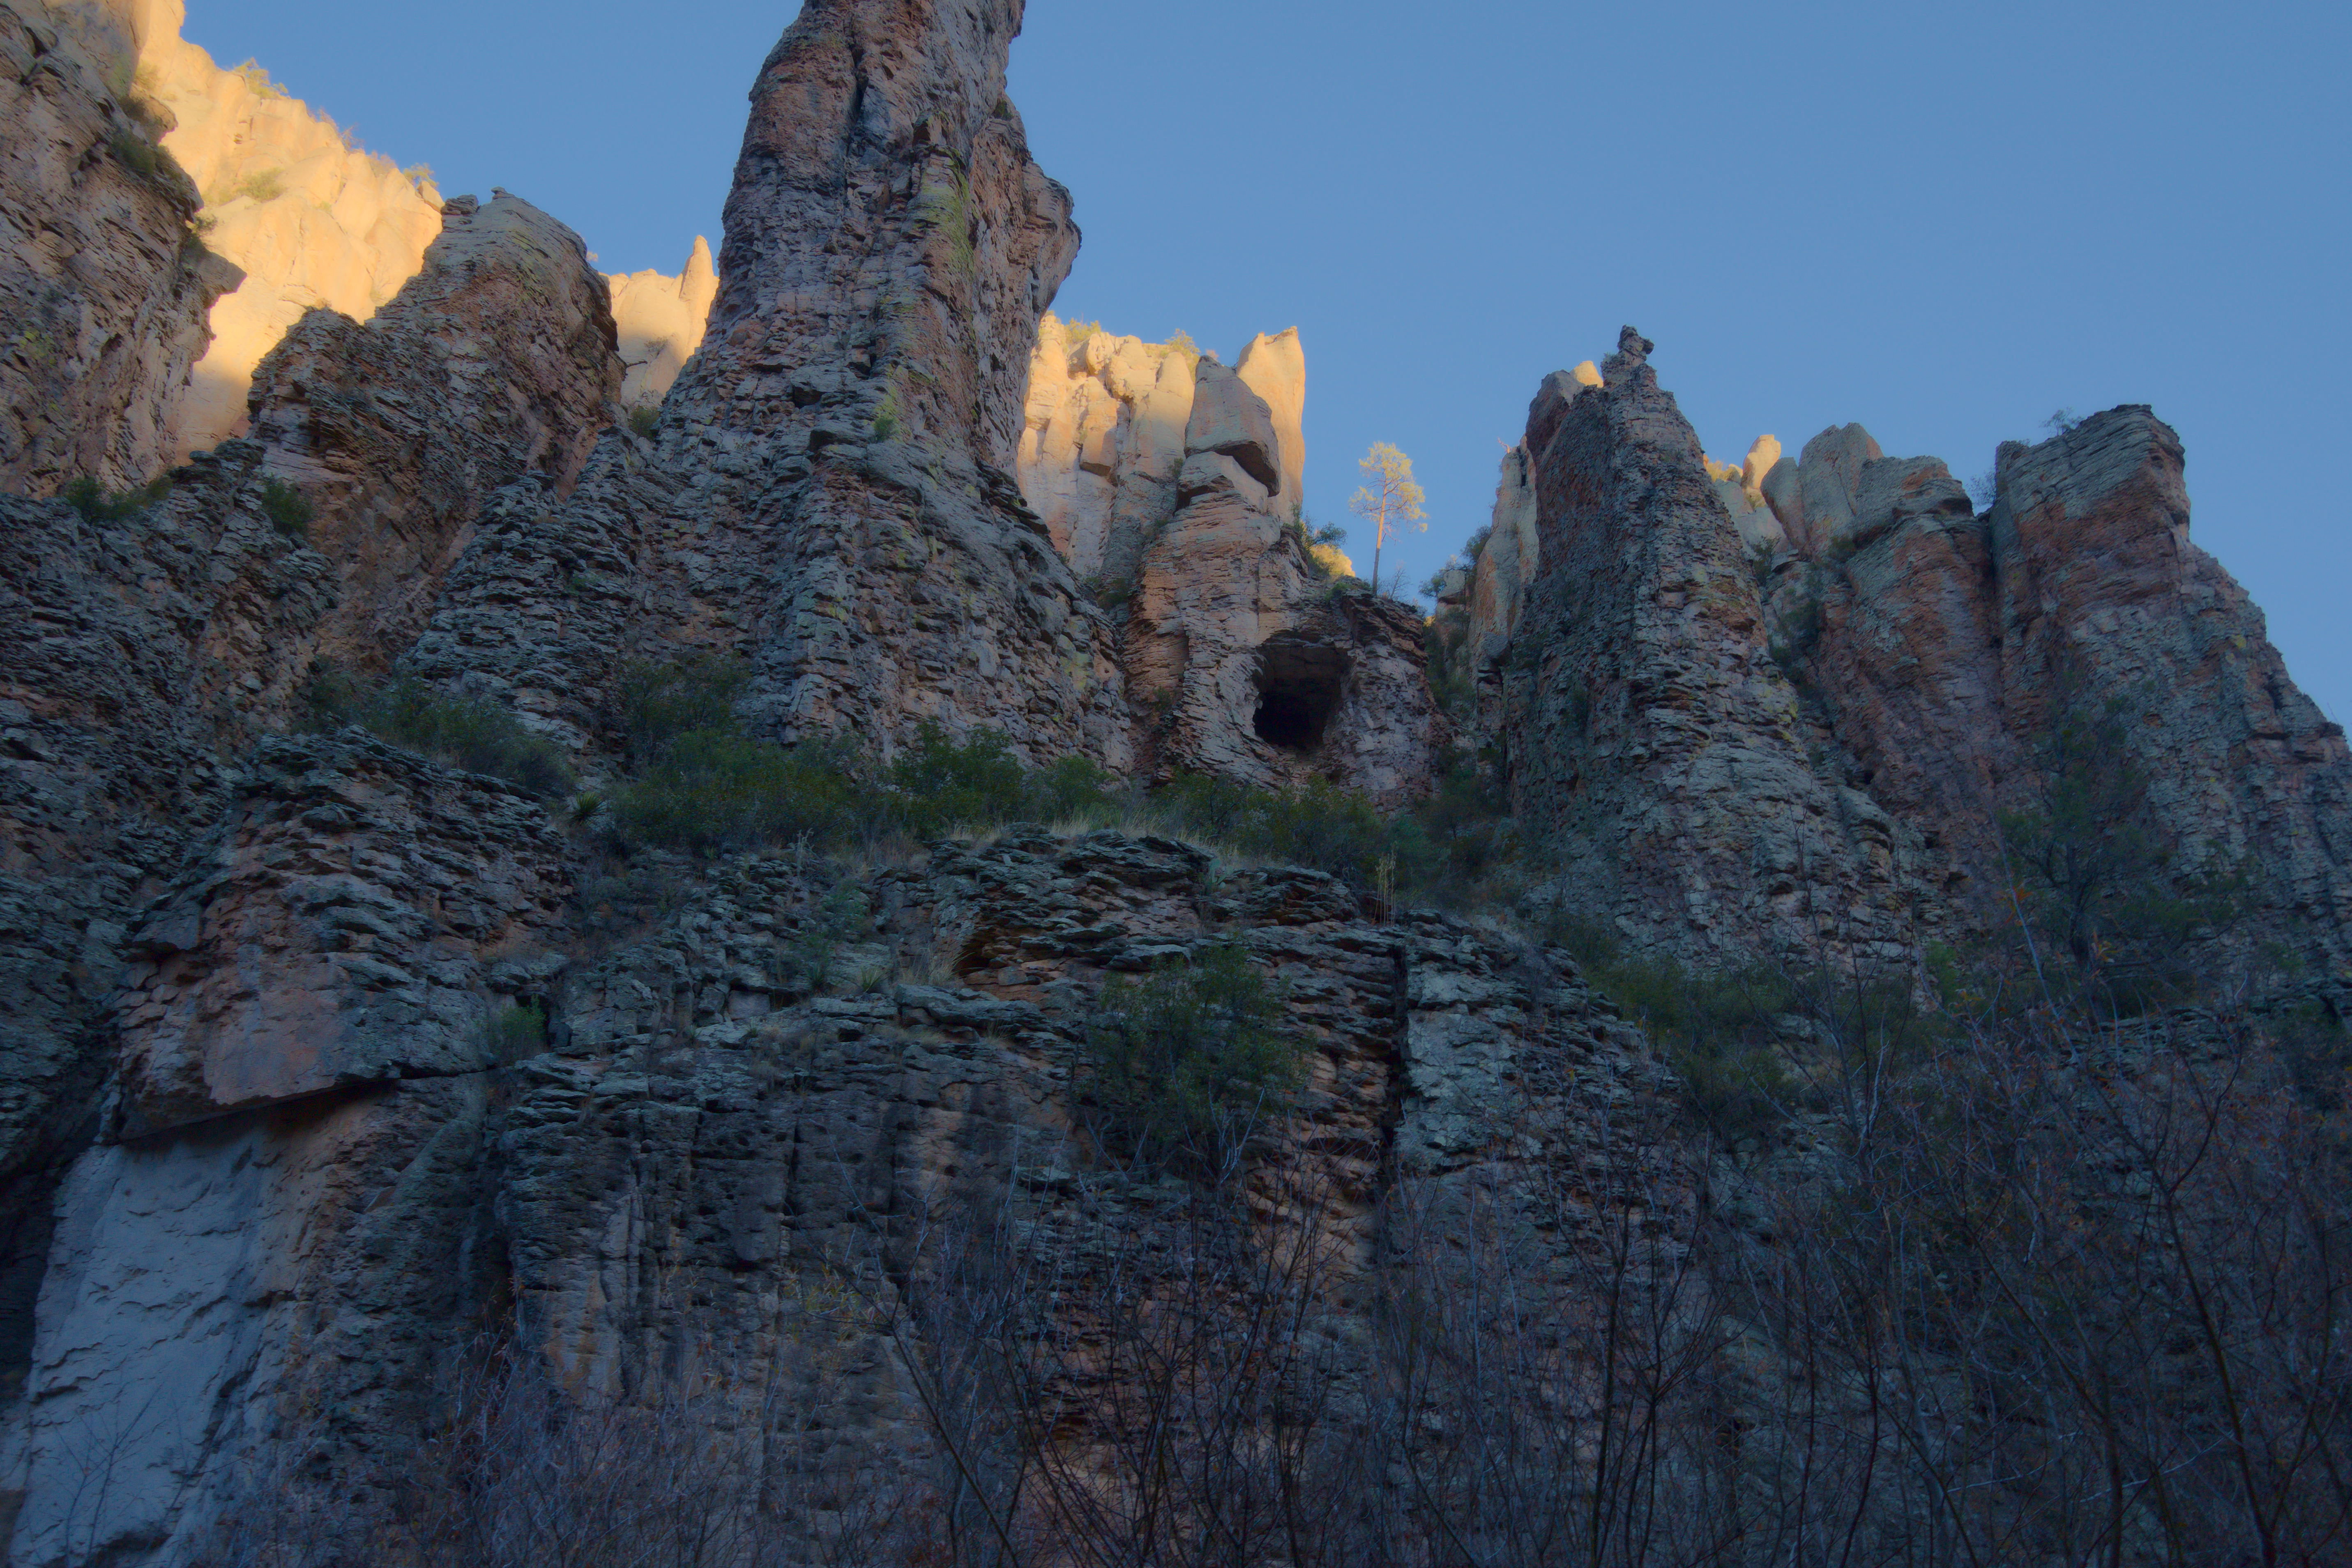 jagged cliffs overlooking the Gila River